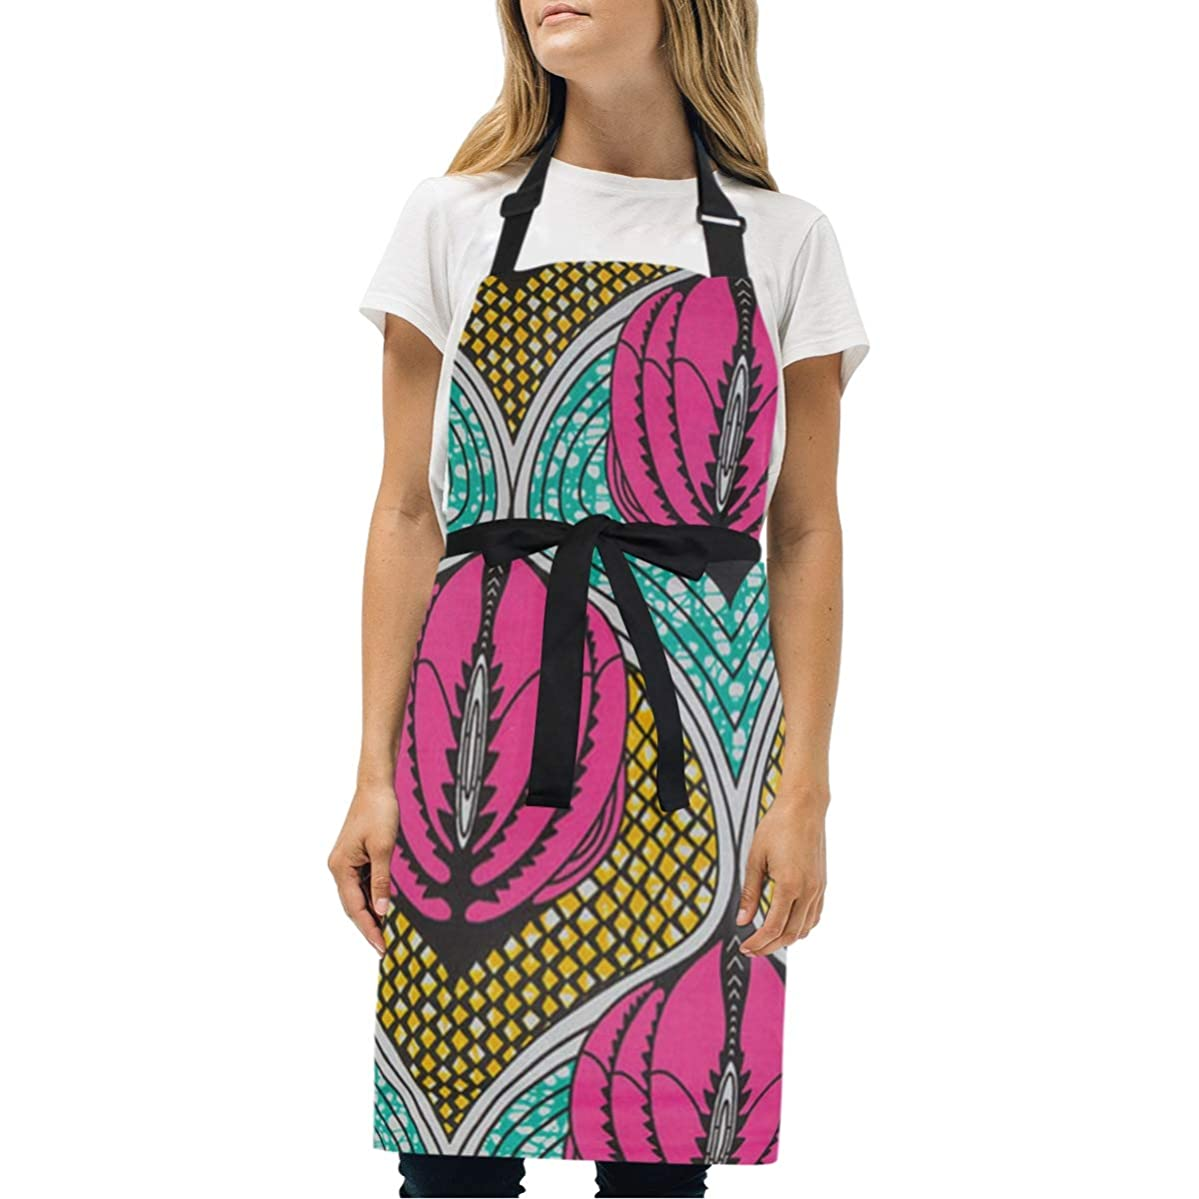 BeliveFinds Ankara Red Green Black Onion Adjustable Bib Apron with Pockets Cooking Kitchen Party Aprons